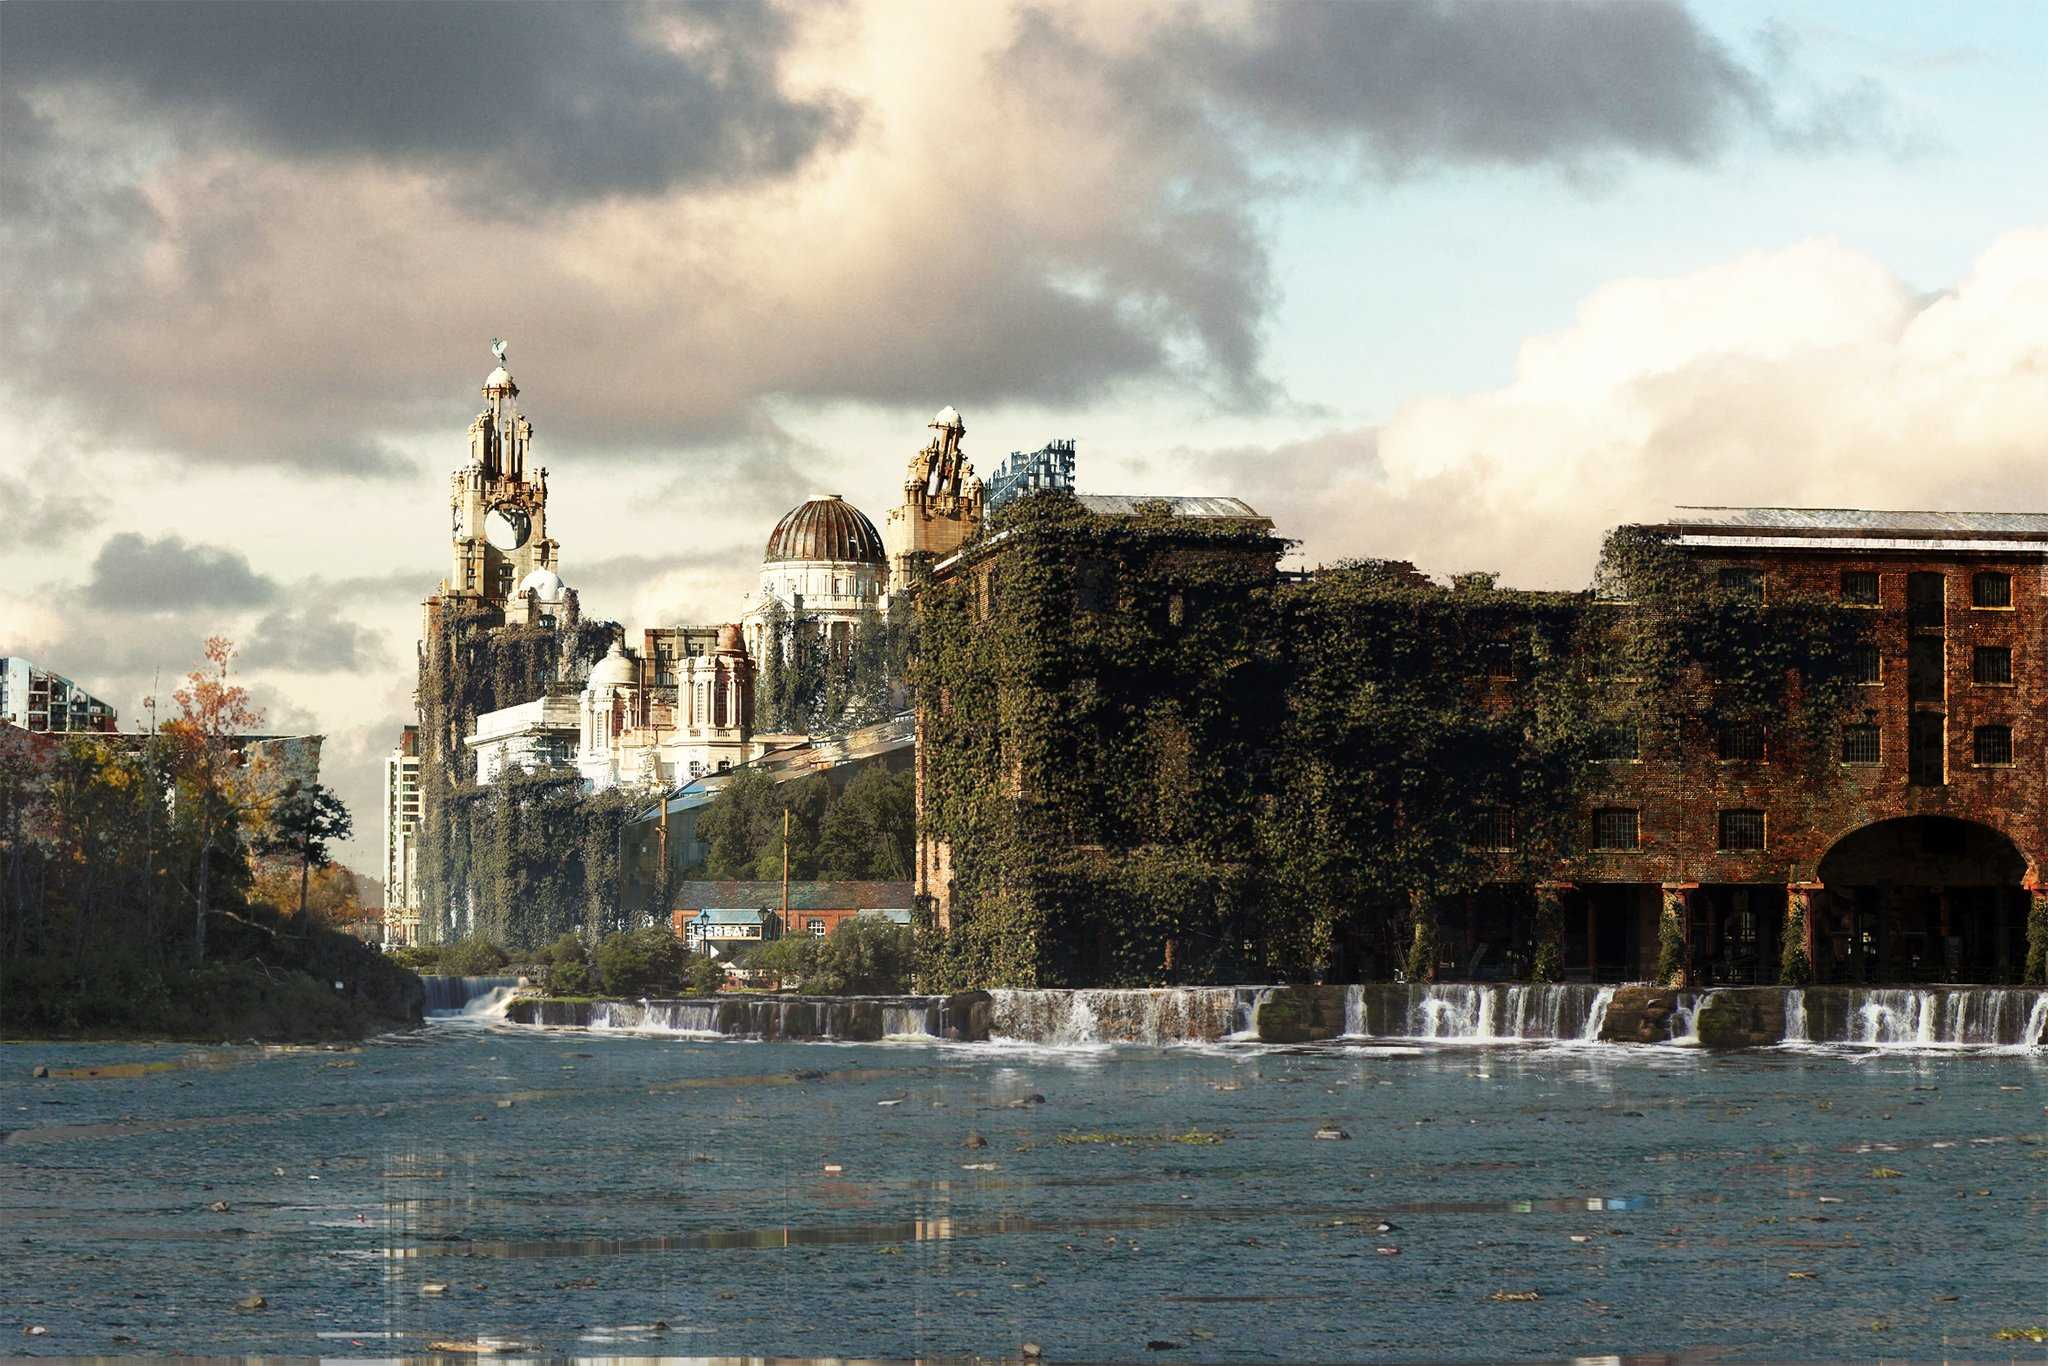 Vamers - Artistry - The World of The Last of Us- Envisioning a Post Apocalyptic Future - Albert Docks Liverpool Apocalypse